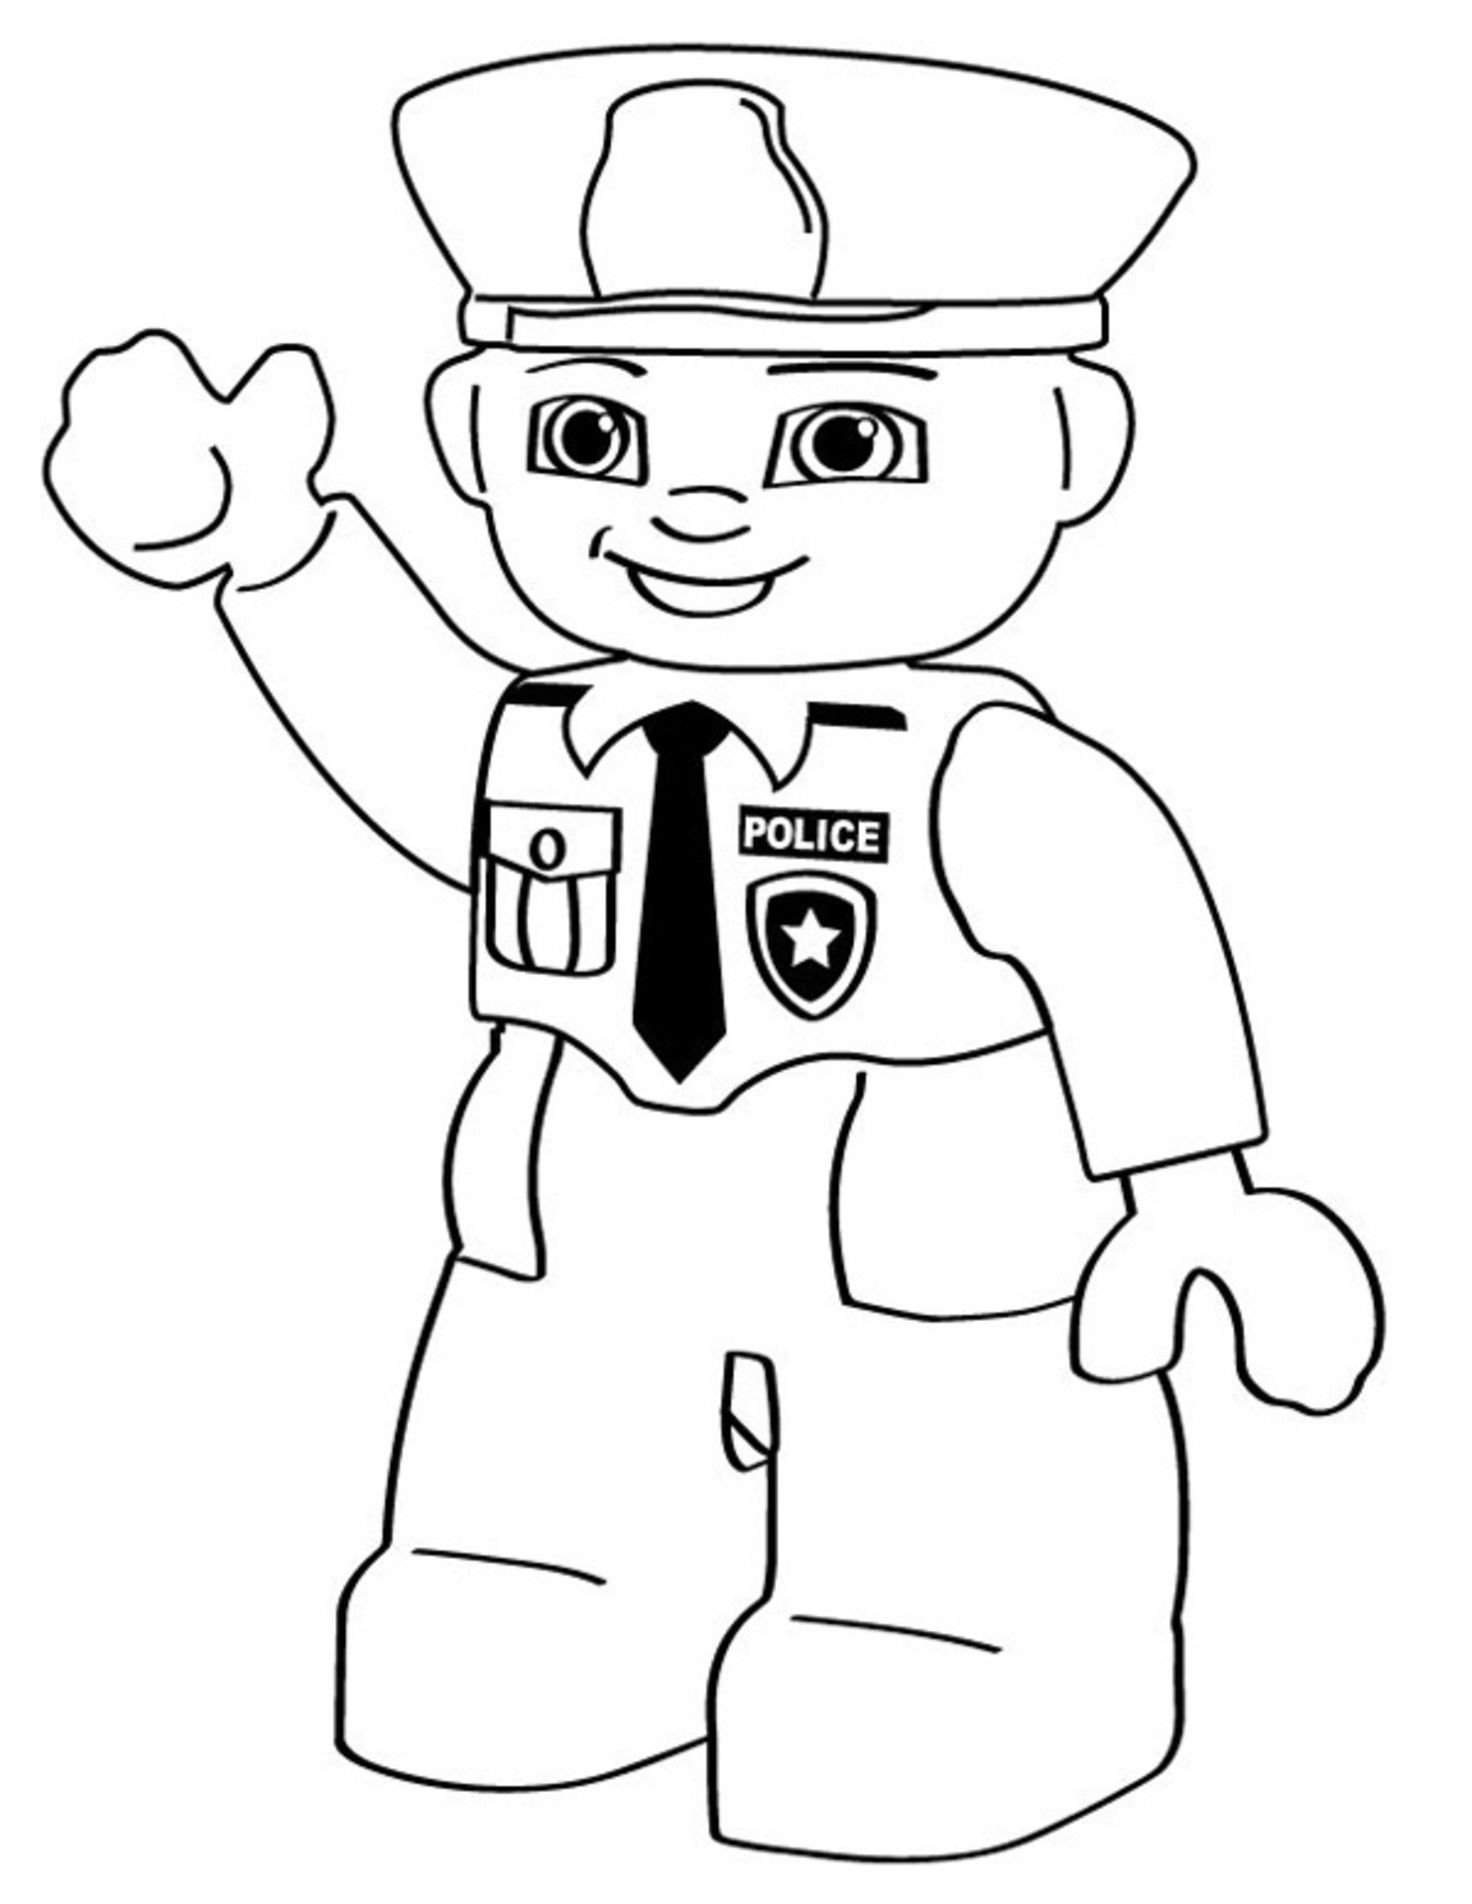 Cartoon Coloring Pages Lego Police Person Lego Coloring Pages Cartoon Coloring Pages Coloring For Kids